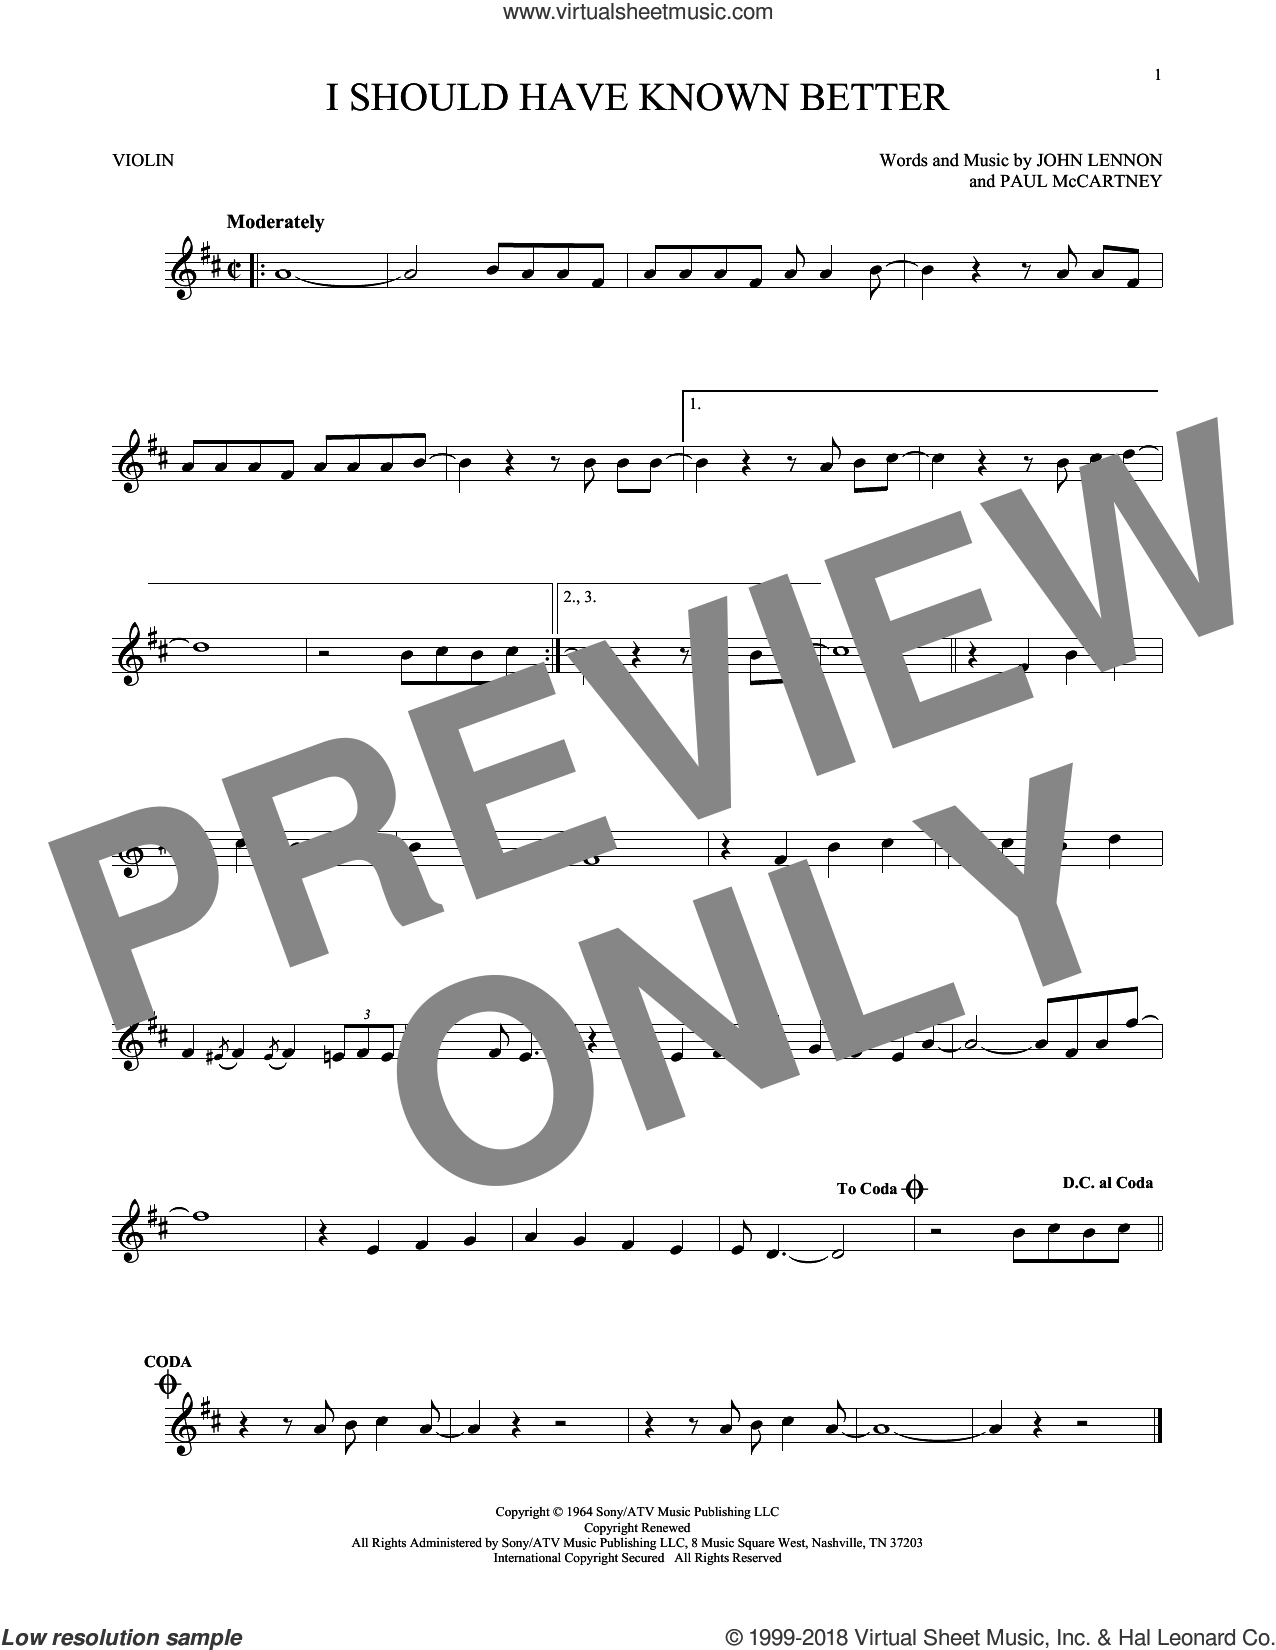 I Should Have Known Better sheet music for violin solo by The Beatles, John Lennon and Paul McCartney, intermediate